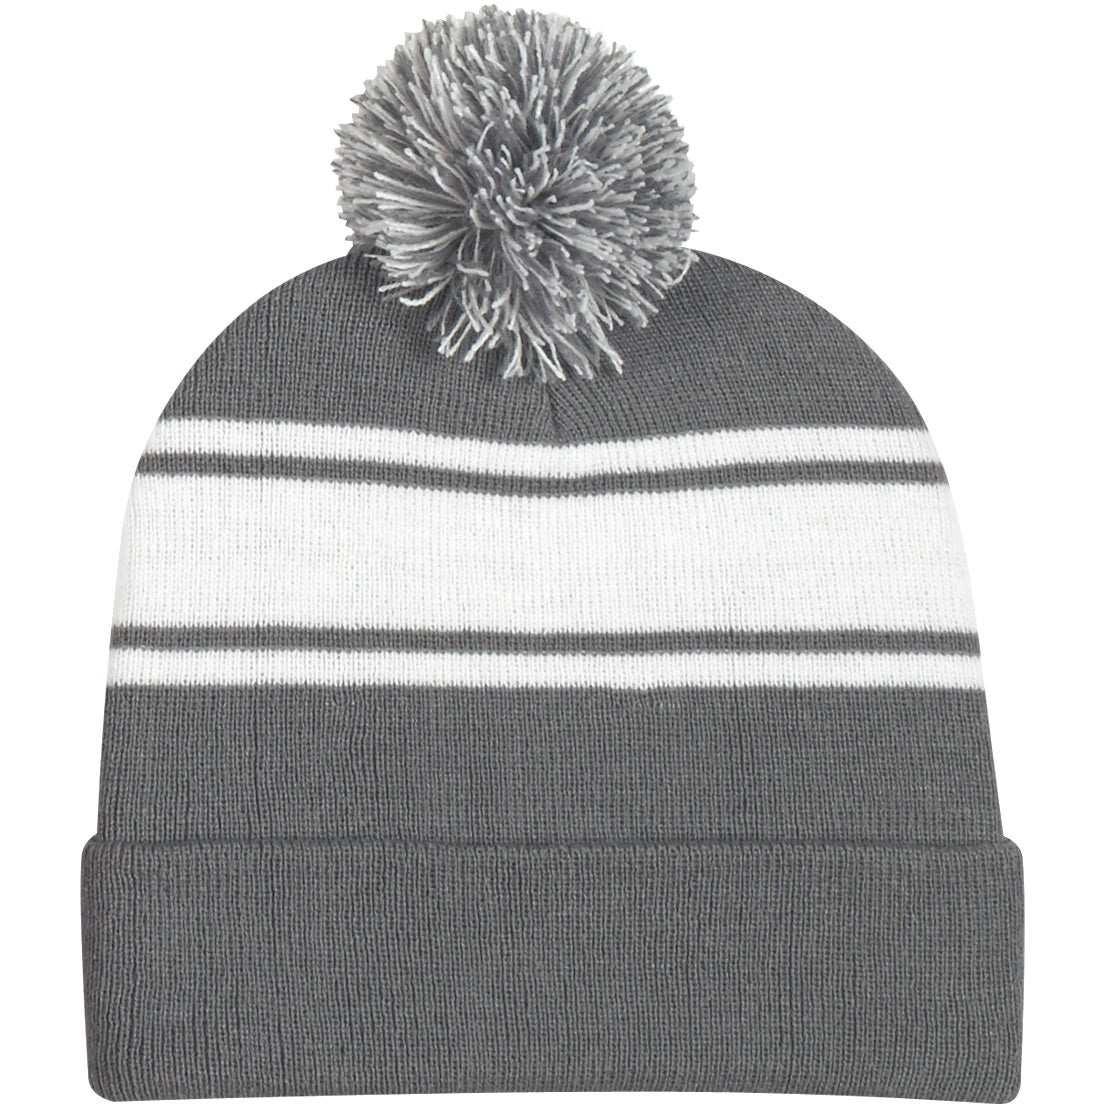 9284e1f8a73 Promotional Two-Tone Knit Pom Beanie With Cuffs with Custom Logo for  5.07  Ea.